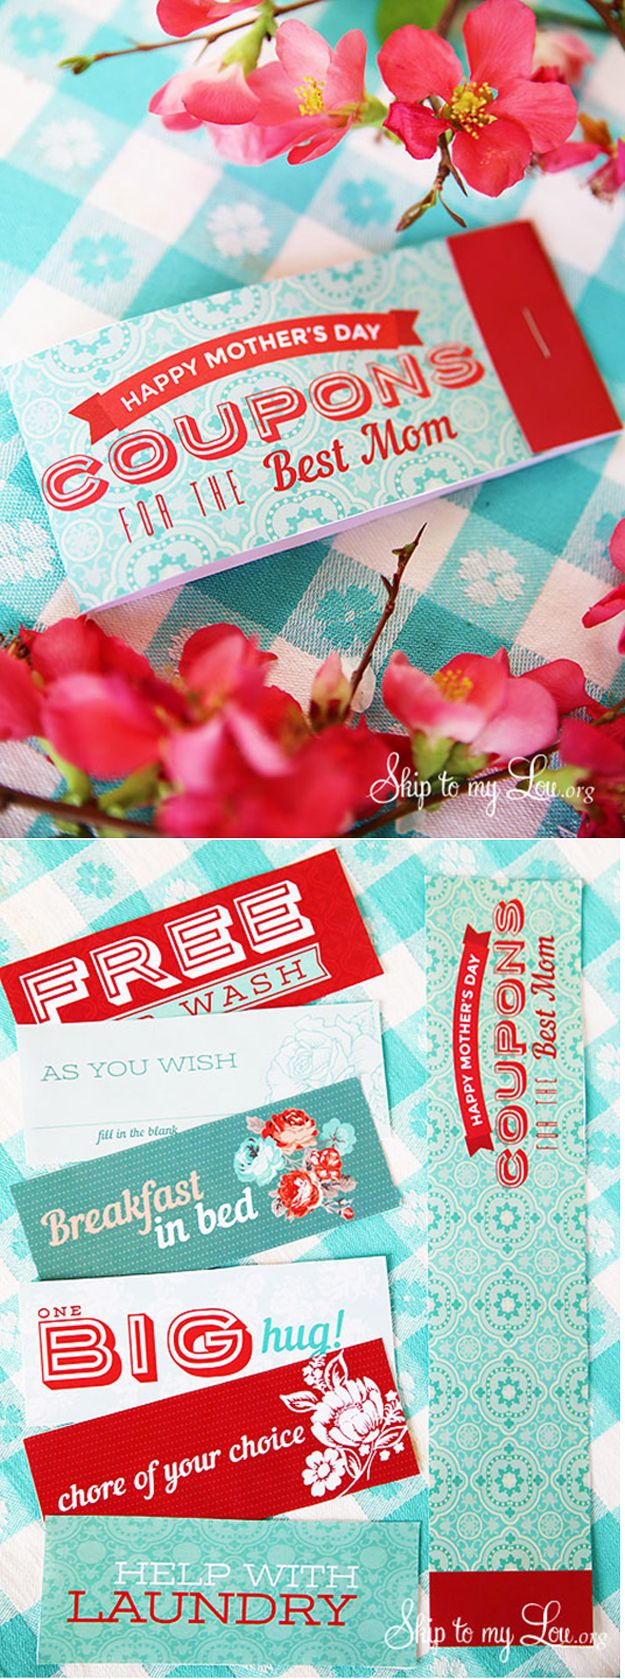 Easy Printable Mother's Day Coupon (free printable) | Simple Mother's Day Gift from Kids by DIY Ready at http://diyready.com/diy-gifts-mothers-day-ideas/